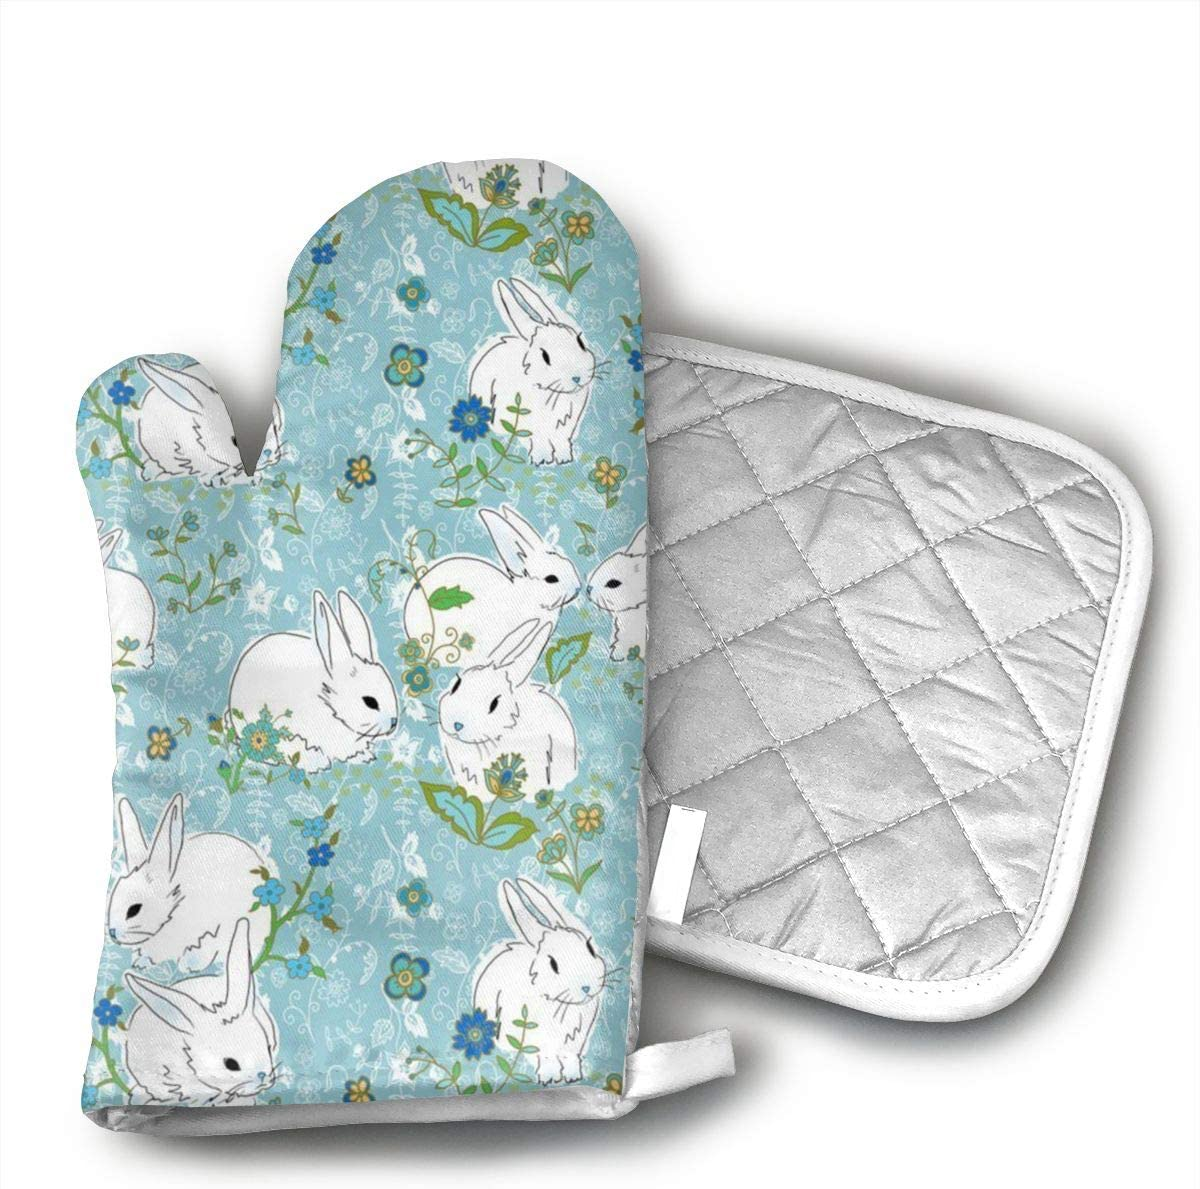 Jiqnajn6 Love Bunny Rabbit Oven Mitts,Heat Resistant Oven Gloves, Safe Cooking Baking, Grilling, Barbecue, Machine Washable,Pot Holders.